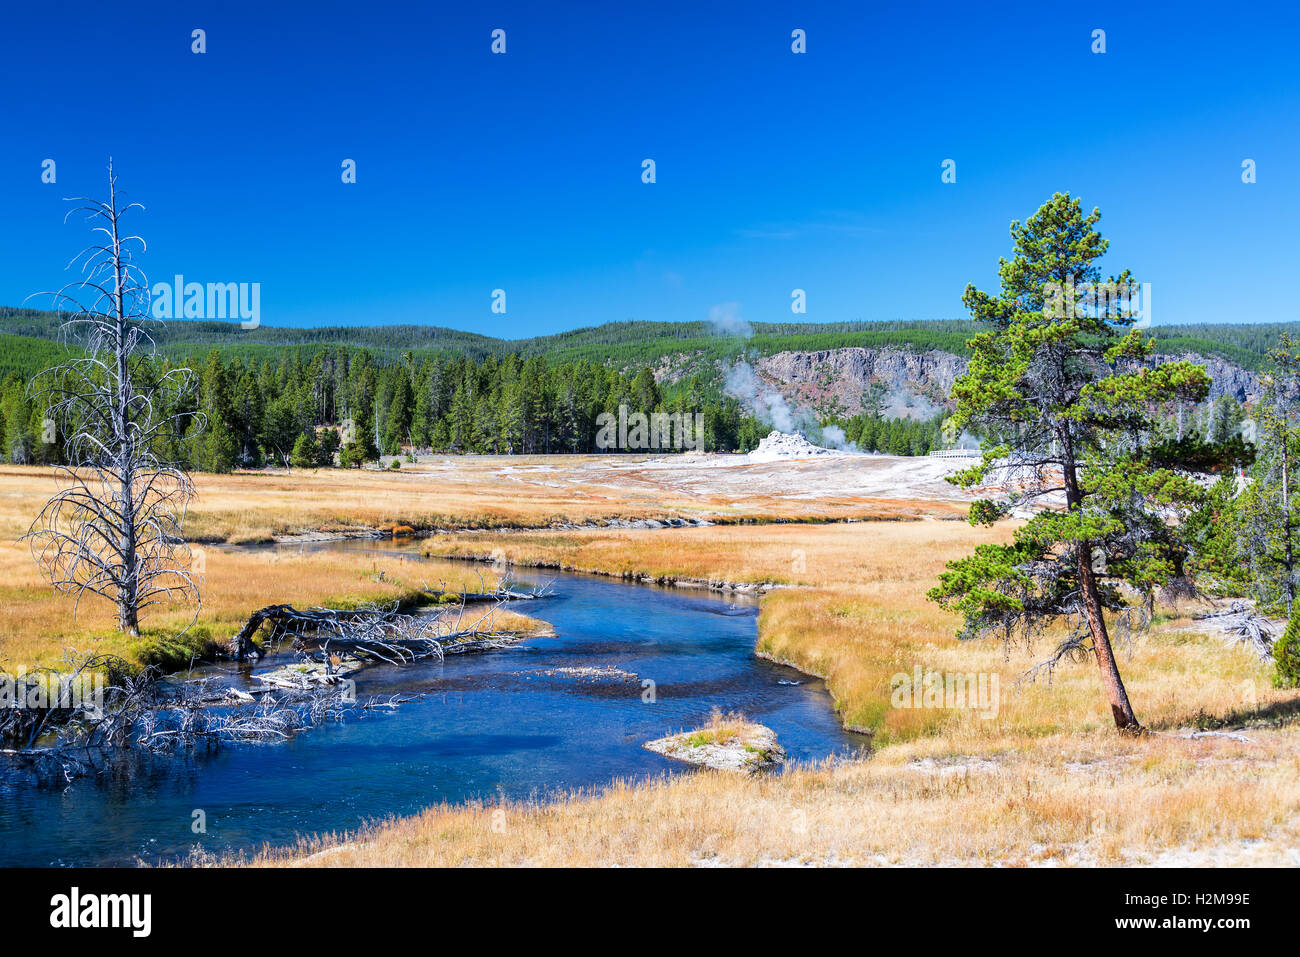 Firehole River running through the Upper Geyser Basin in Yellowstone National Park - Stock Image